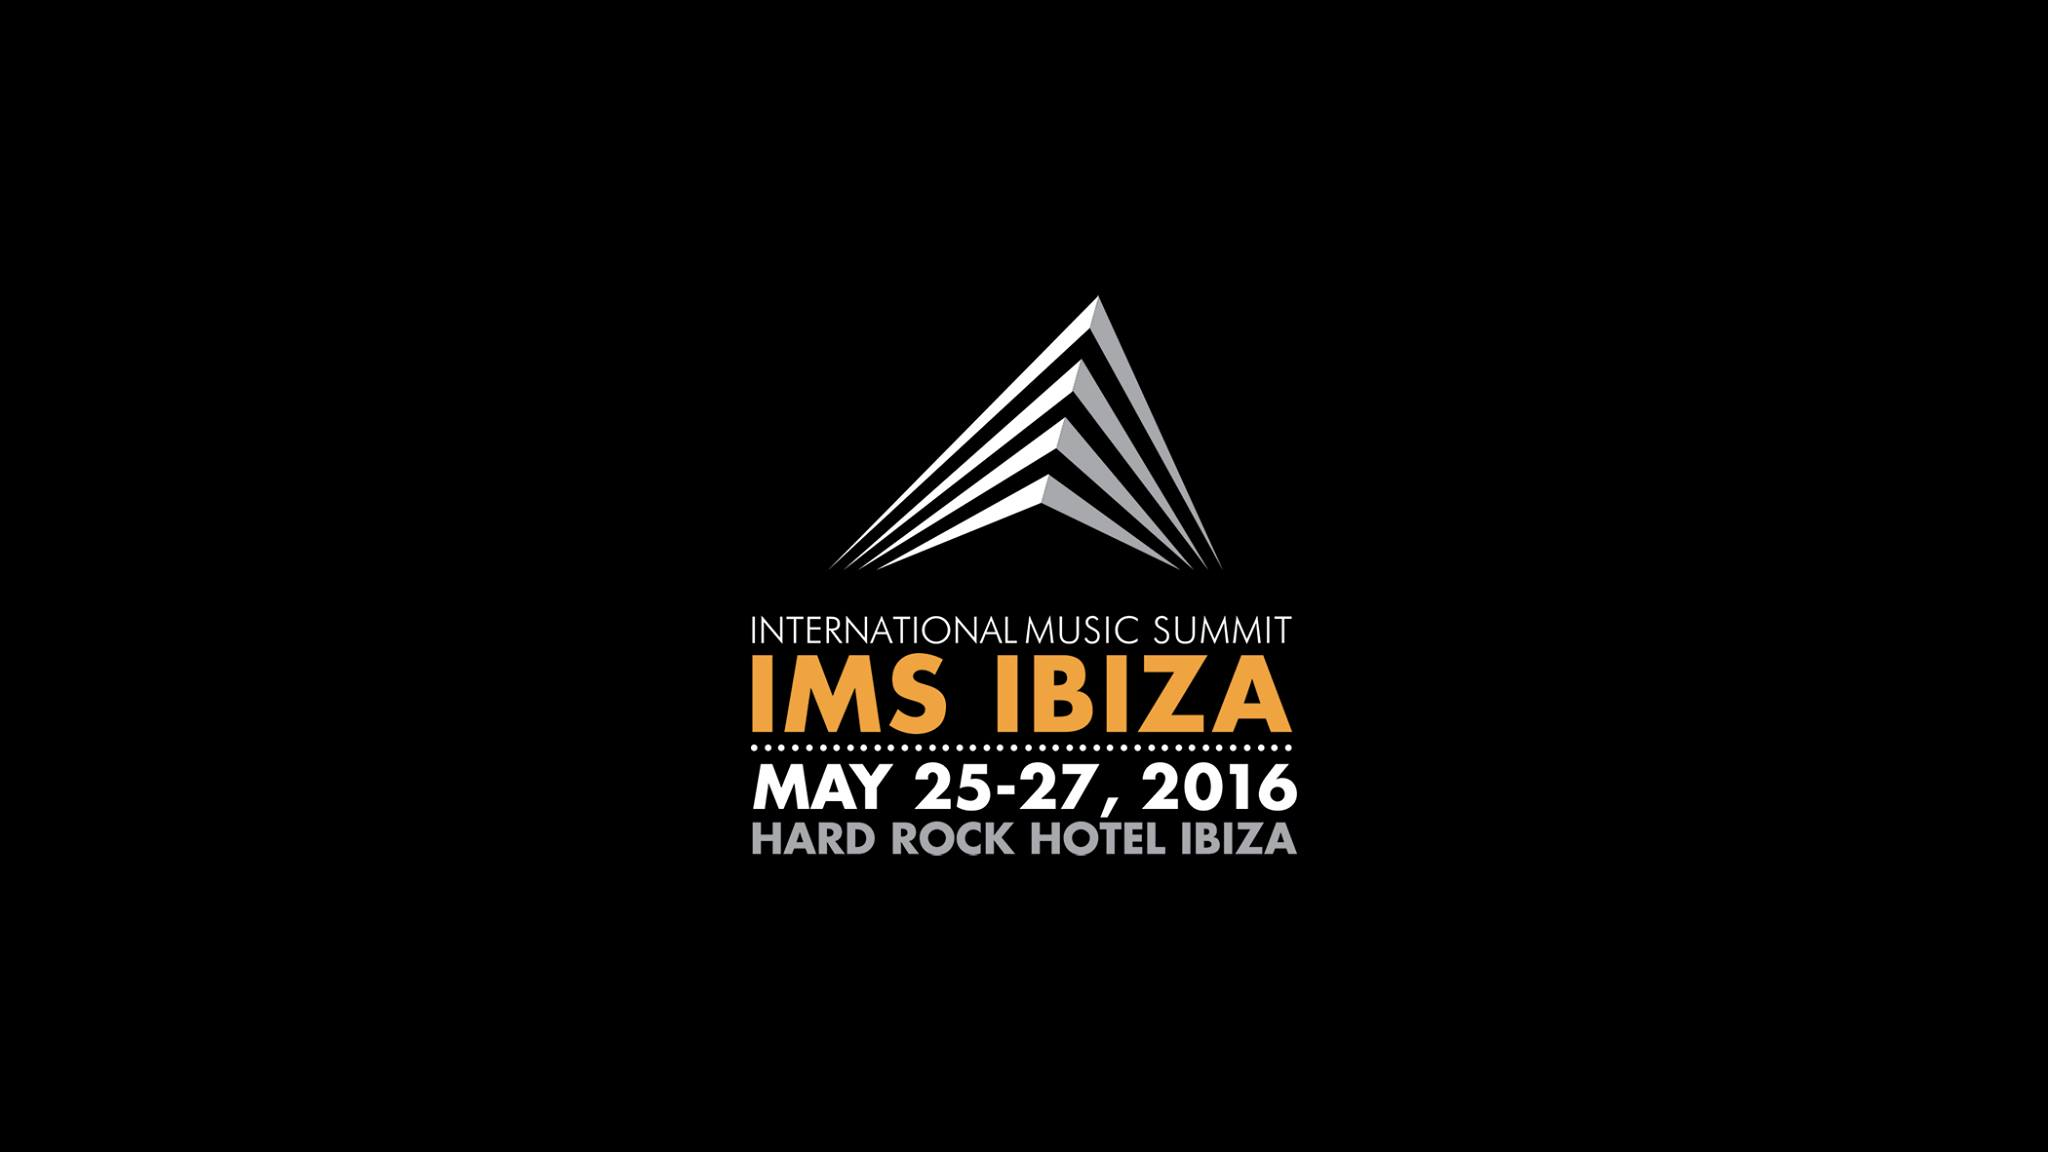 Programa Internacional Music Summit 2016